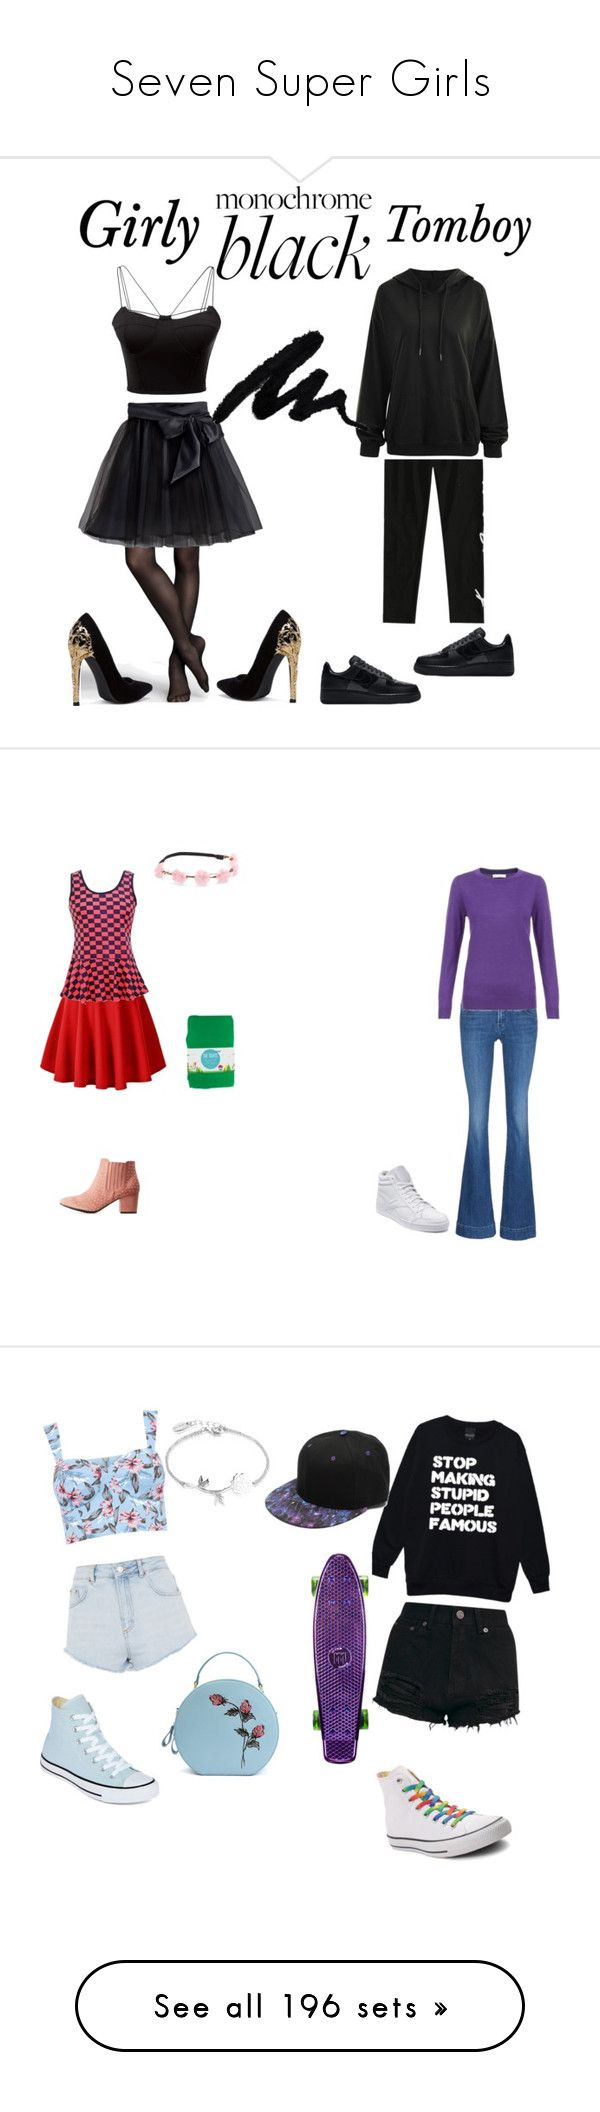 """""""Seven Super Girls"""" by sierra-ivy on Polyvore featuring WithChic, Express, Little Wardrobe London, NIKE, allblackoutfit, Charlotte Russe, Mudd, J Brand, Reebok and Converse"""